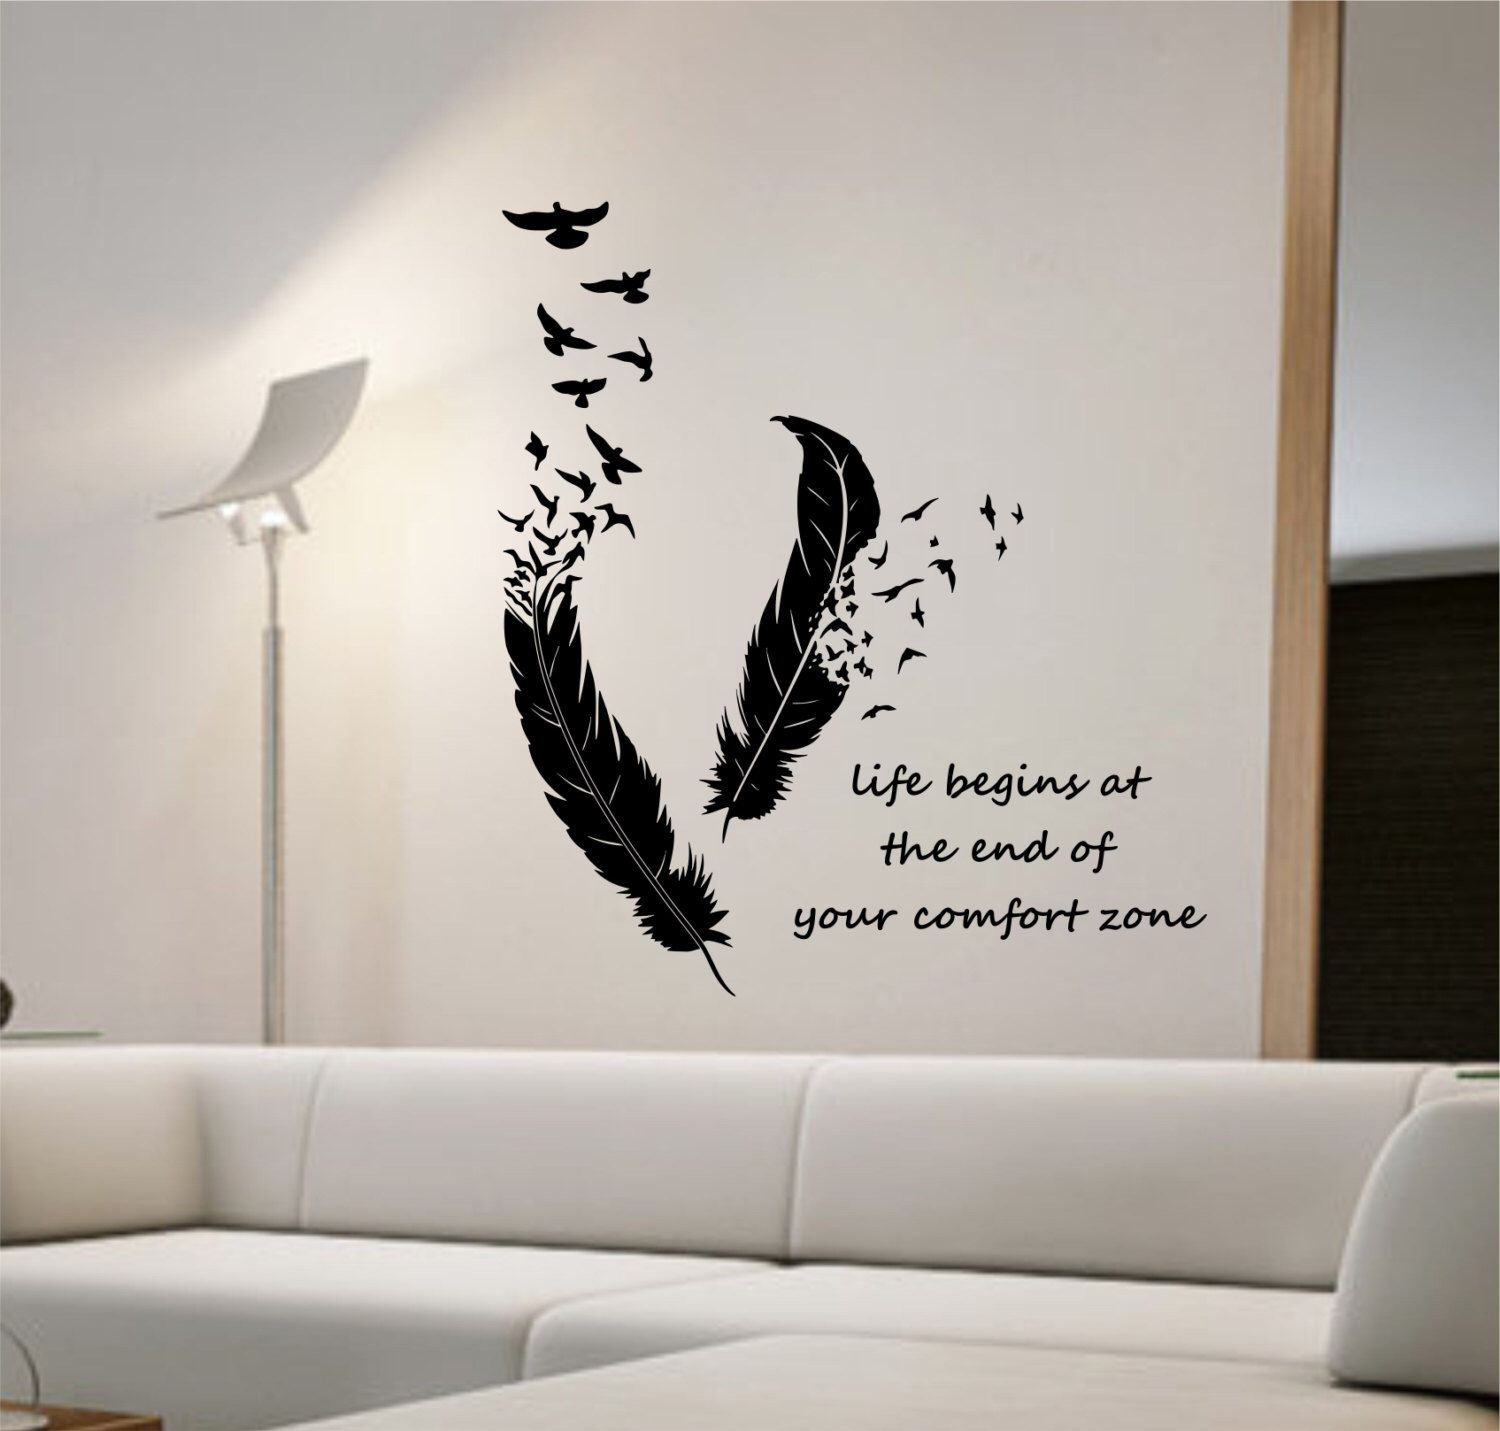 Feathers Turning Into Birds Vinyl Wall Decal Sticker Art Decor Bedroom Design Mural Animals Home Decor Living Room Life Begins Quote Wall Decals Living Room Wall Stickers Bedroom Wall Stickers Living